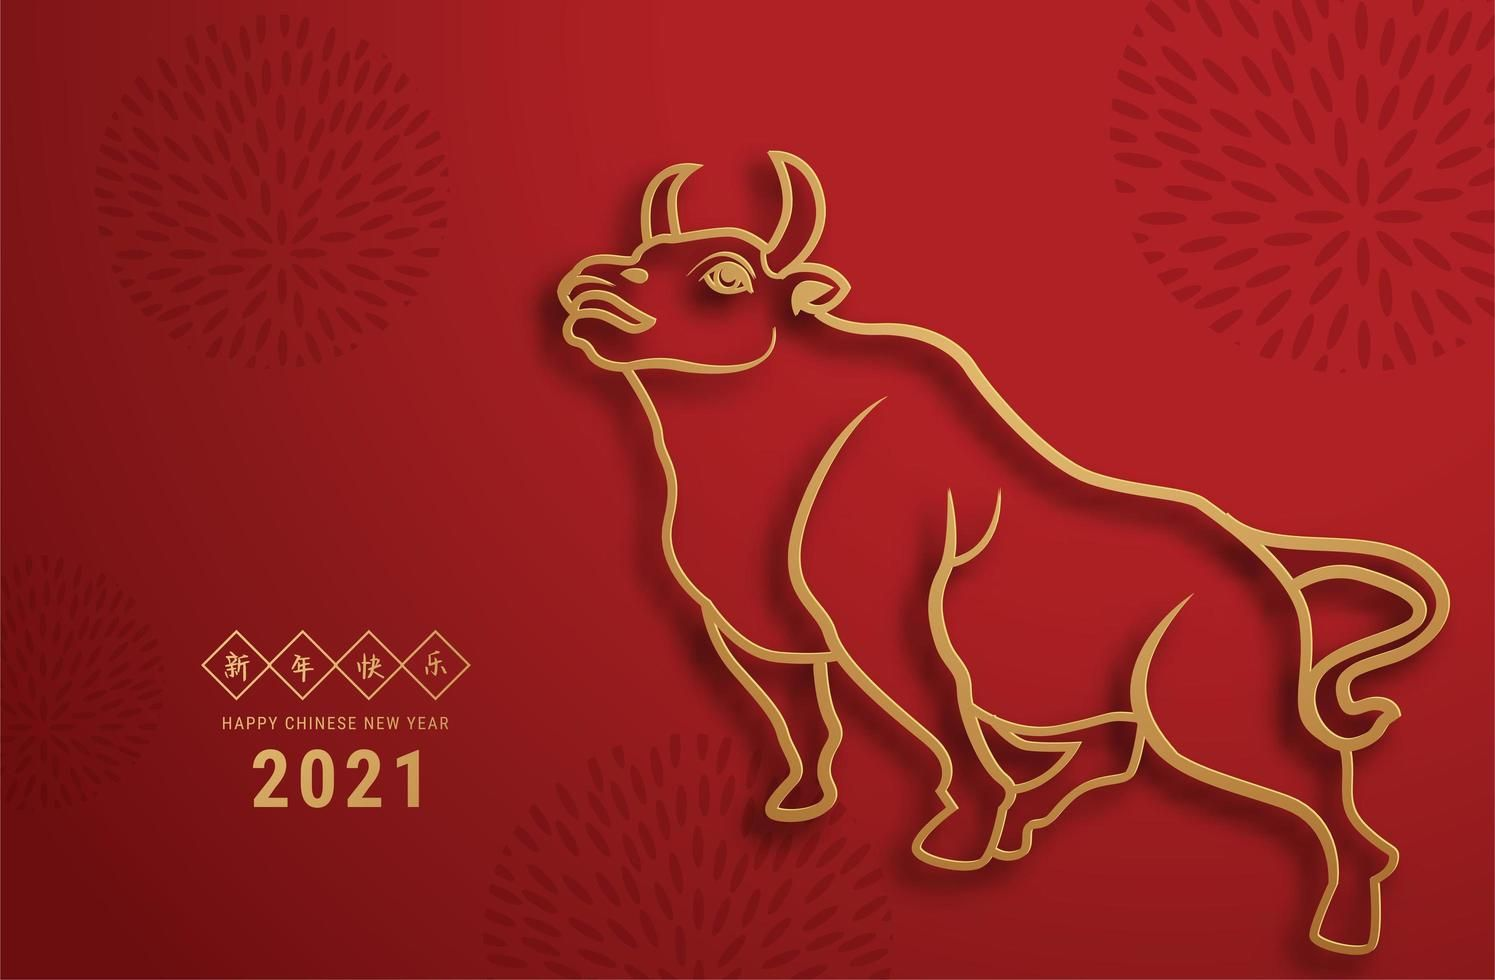 Pin On Year Of The Ox 2021